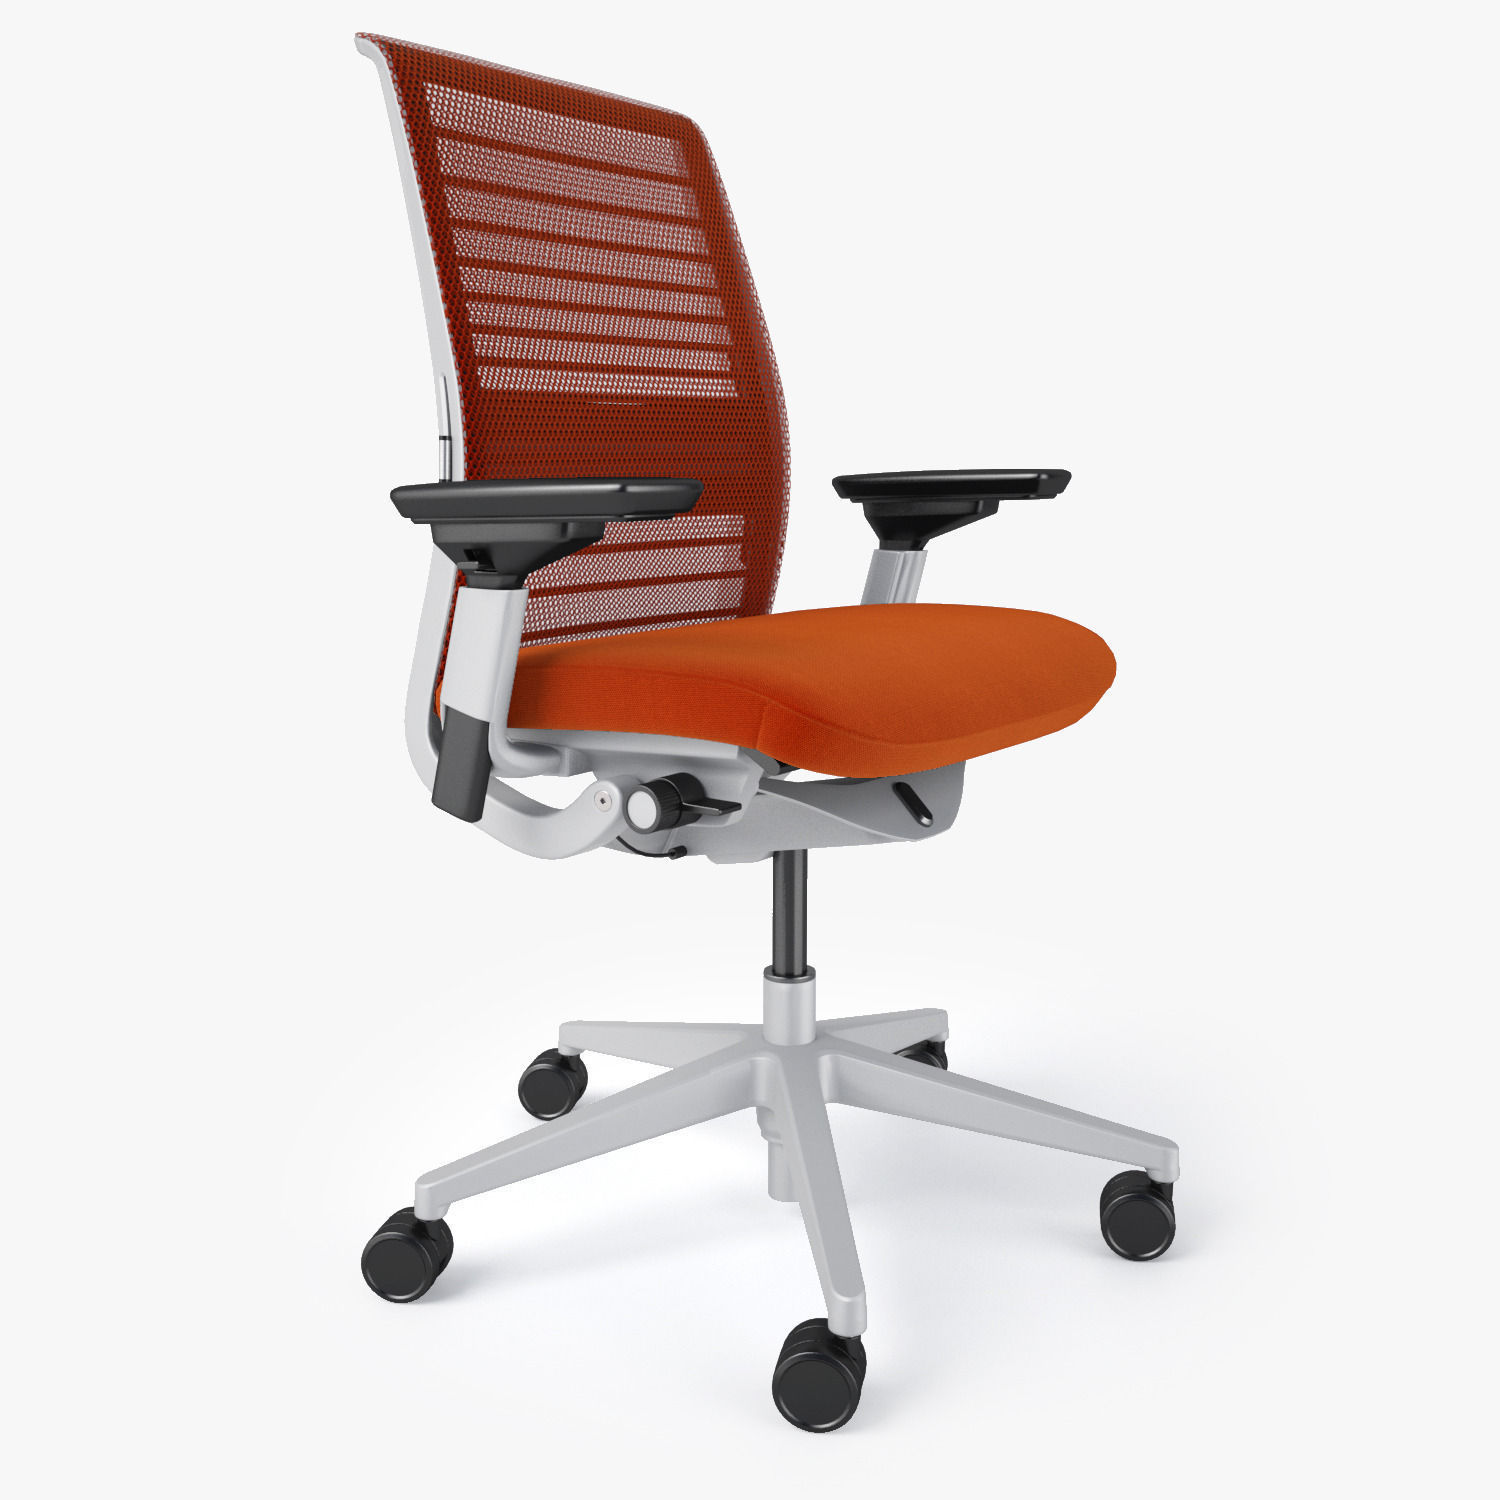 Steelcase think office chair 3d model max obj fbx mtl for Model furniture